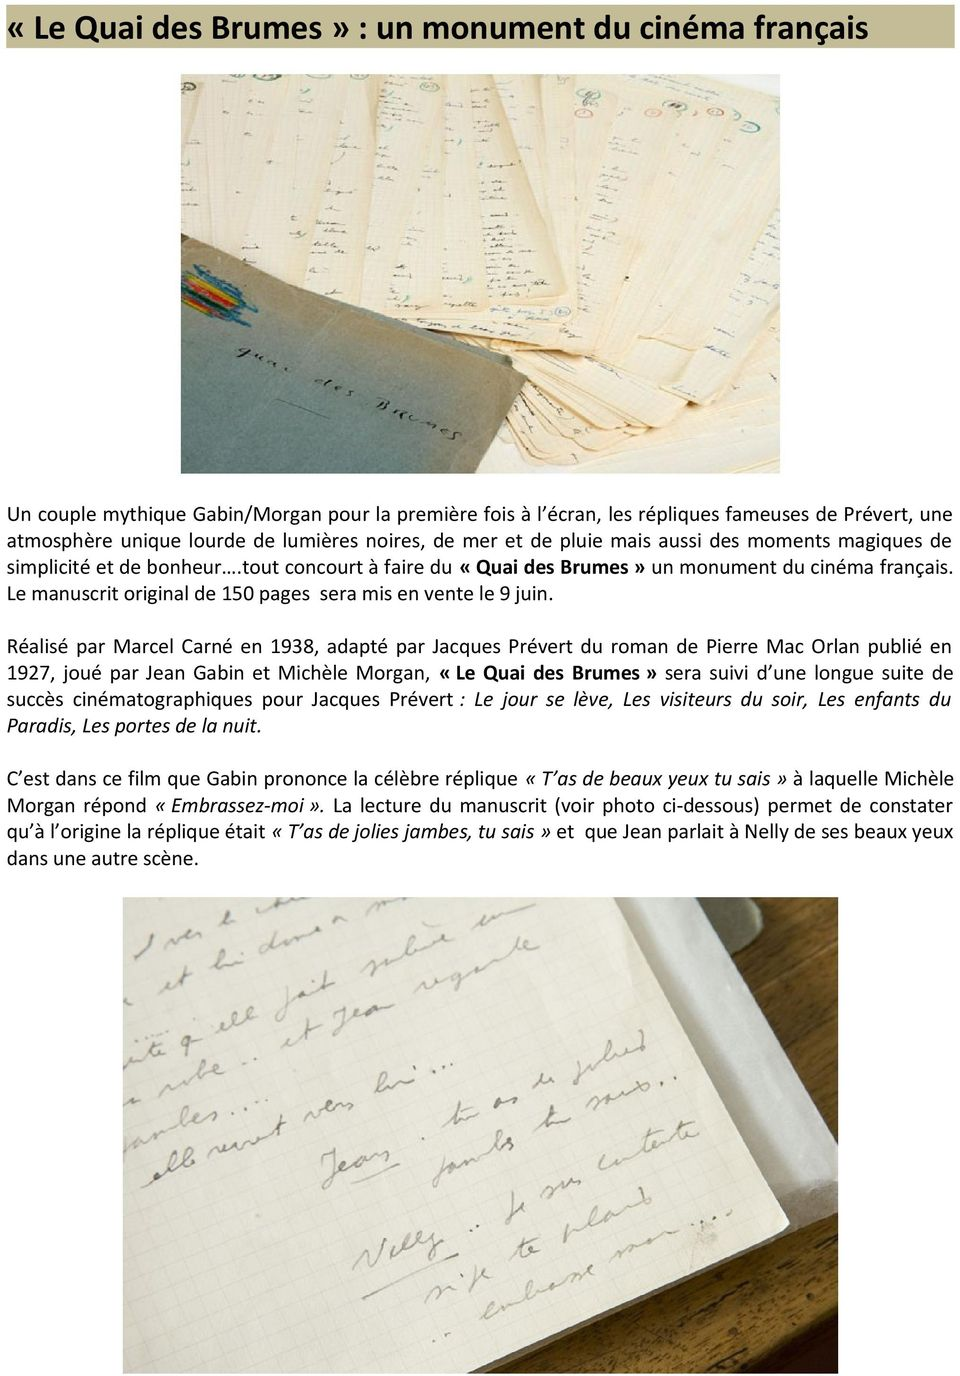 Le manuscrit original de 150 pages sera mis en vente le 9 juin.